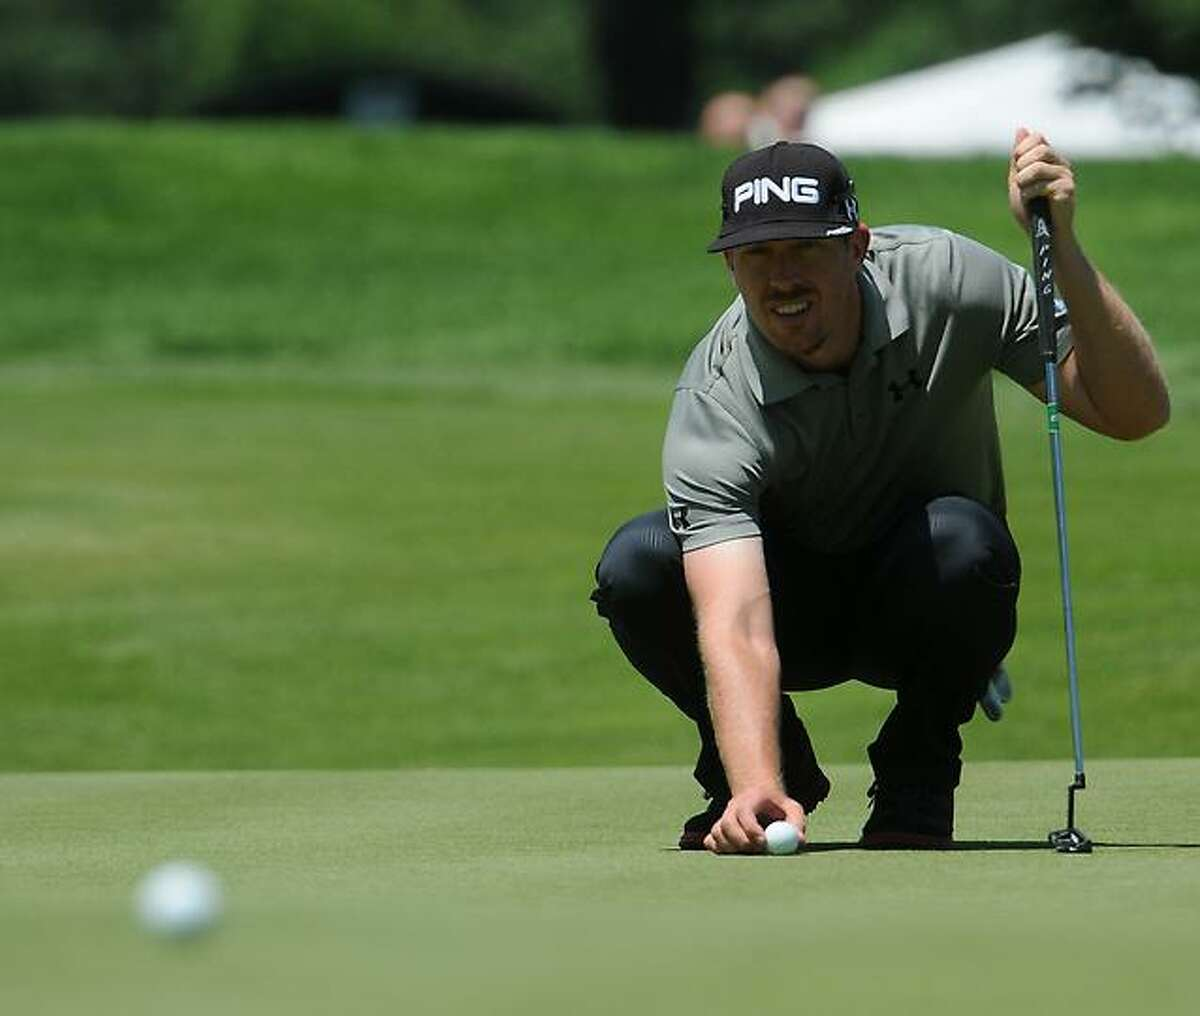 Peter Hvizdak Ñ RegisterHunter Mahan lines up his putt at the 9th Hole during first round of golf Thursday June 20, 2013 of the PGA 2013 Travelers Championship at the Tournament Players Club River Highlands in Cromwell, Conn.